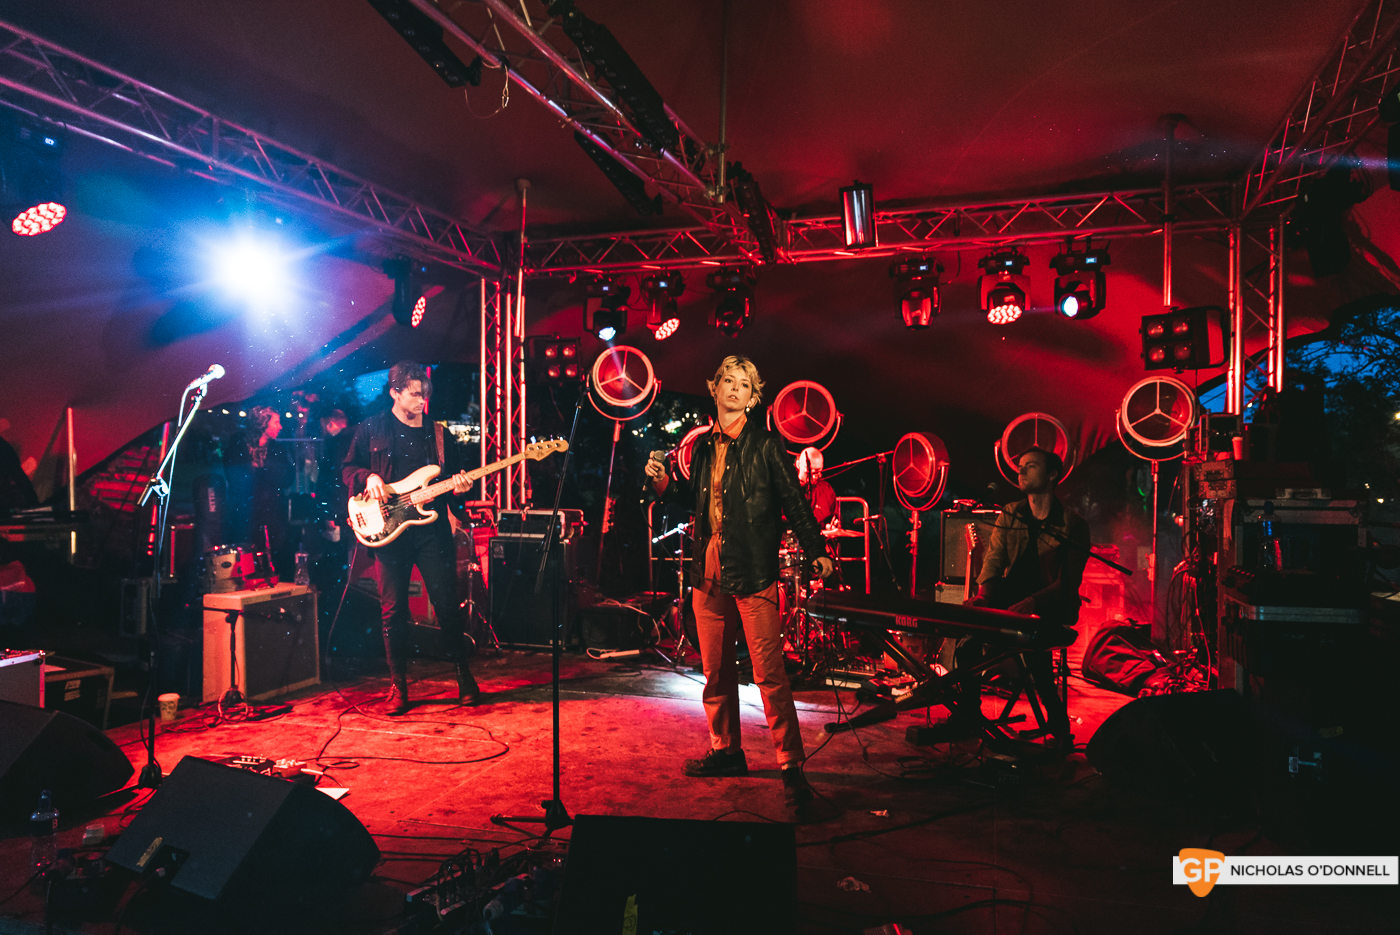 Soda Blonde perforing at the Faerie stage at KnockanStockan 19. Photos by Nicholas O_Donnell. (1 of 7)